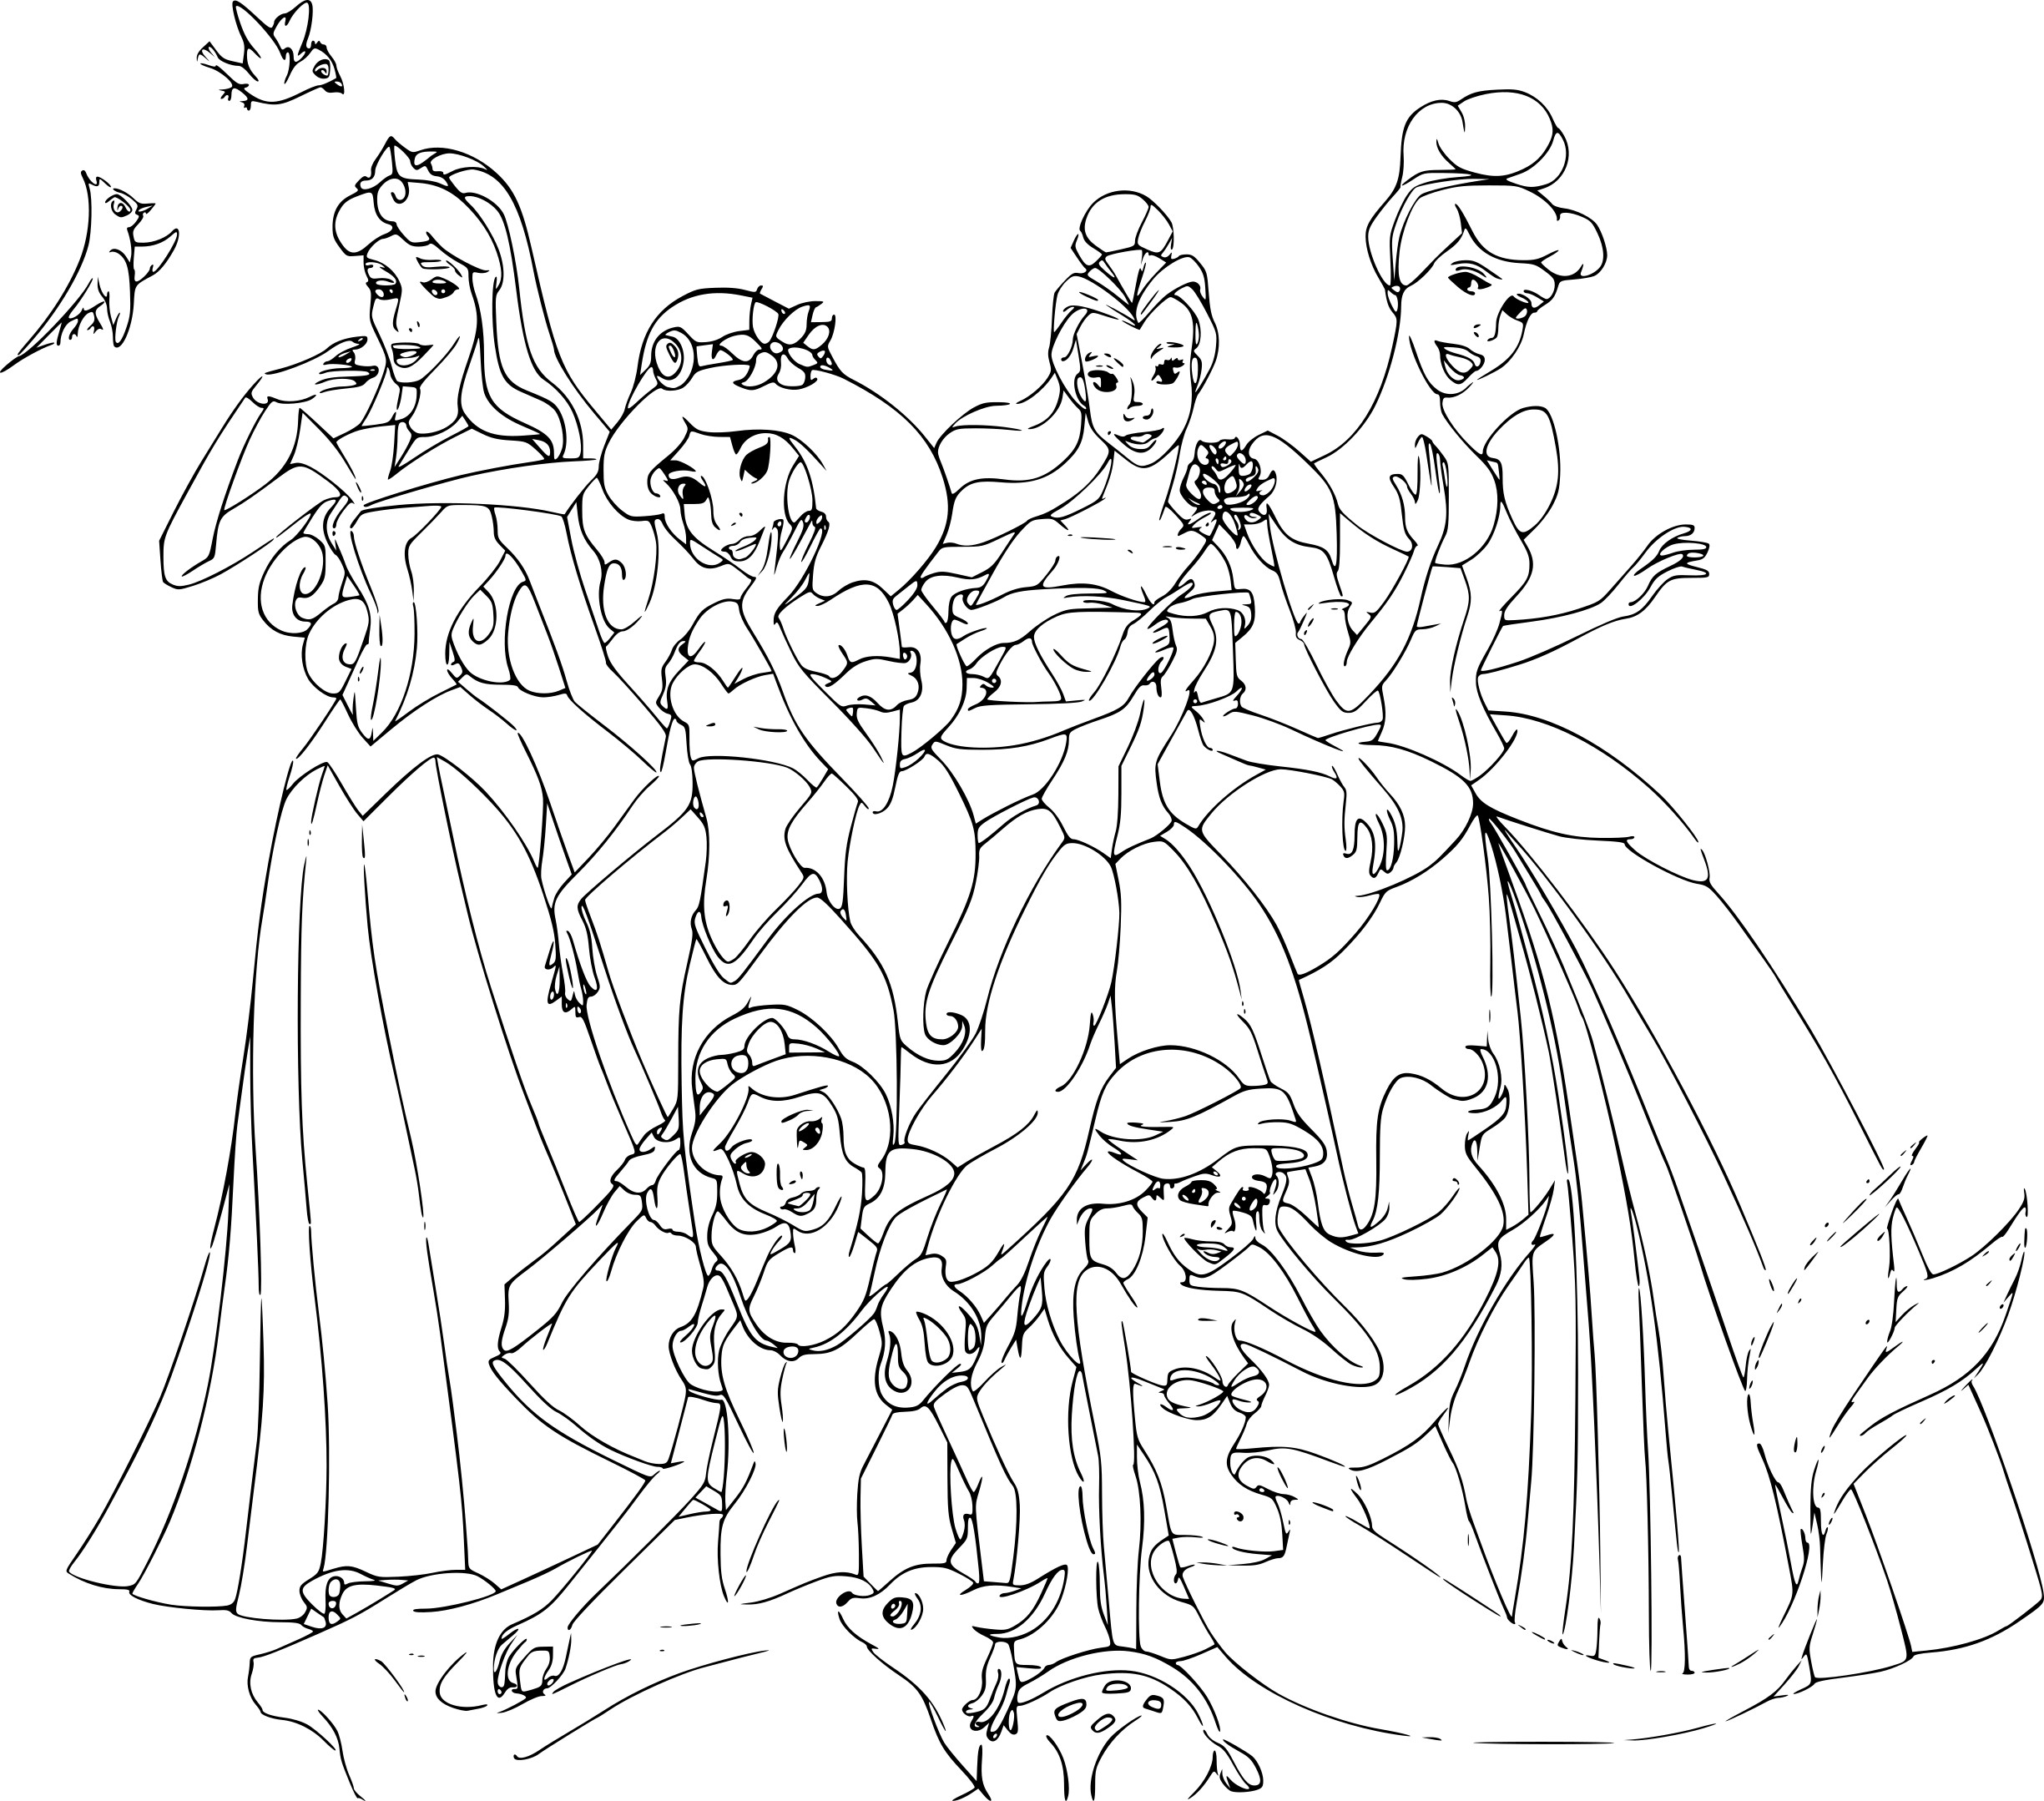 coloriage disney princesse - Dessin A Colorier Disney